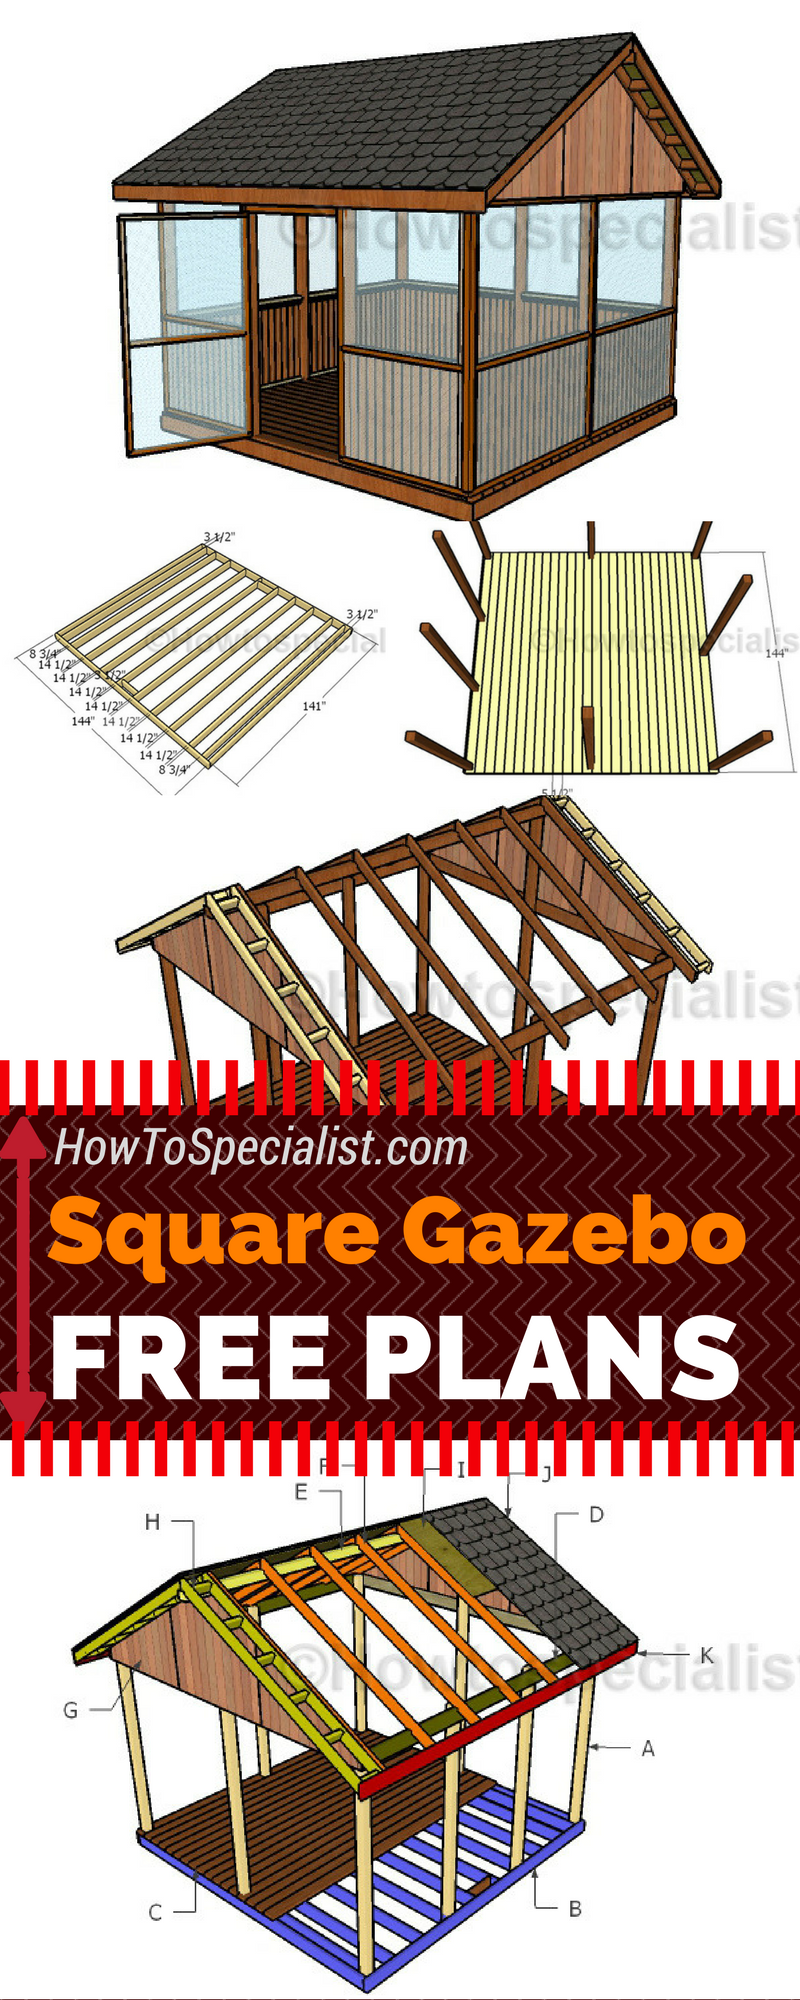 Screened Gazebo Plans Howtospecialist How To Build Step By Step Diy Plans Gazebo Plans Screened Gazebo Diy Gazebo